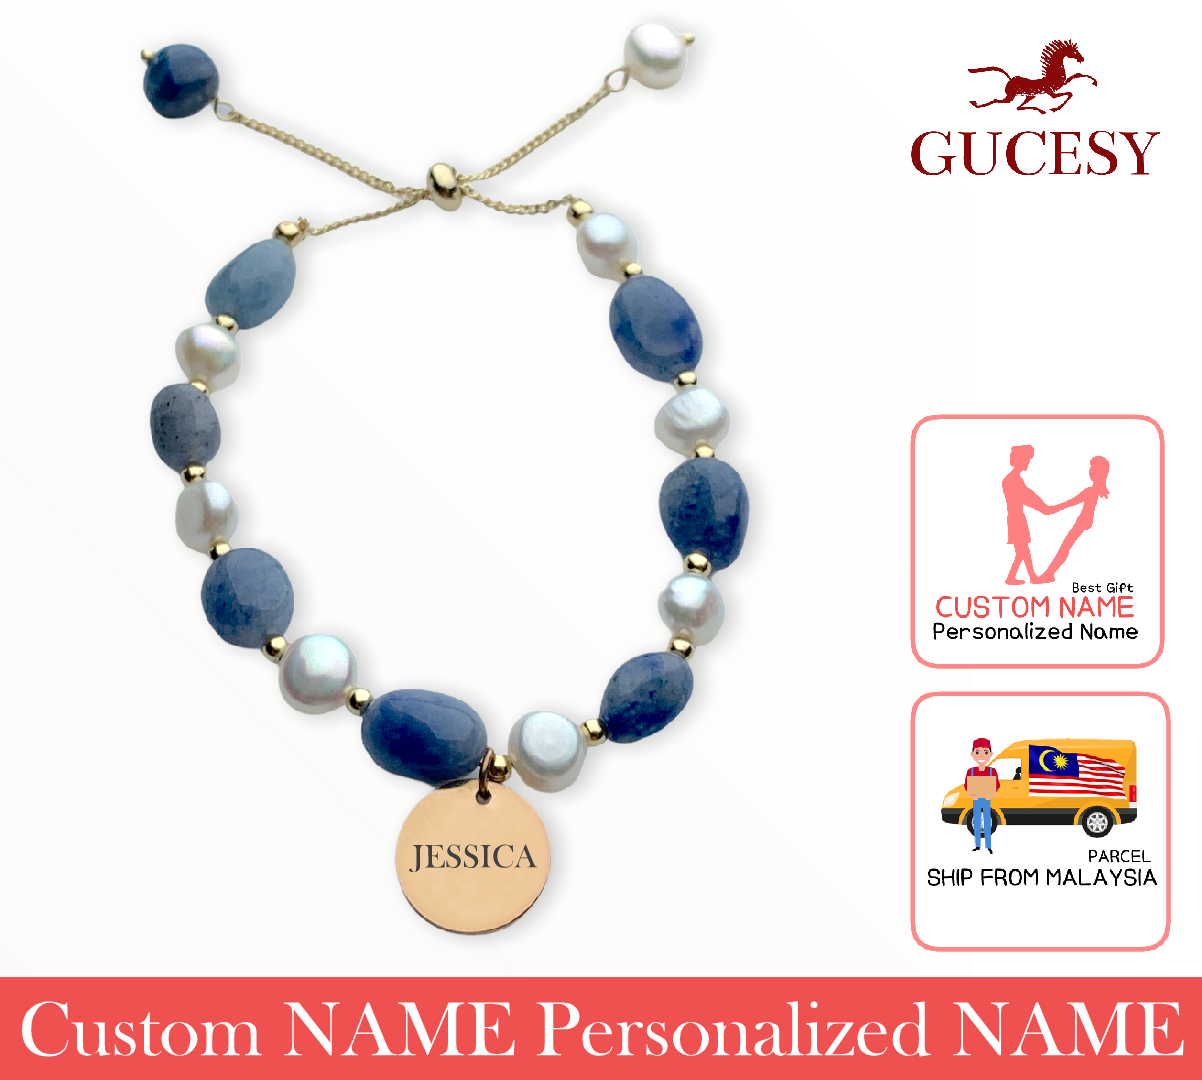 GUCESY Personalized Name Blue Pearl Aventurine Slip Bracelet Hadiah GIFT GIVING READY Custom Name